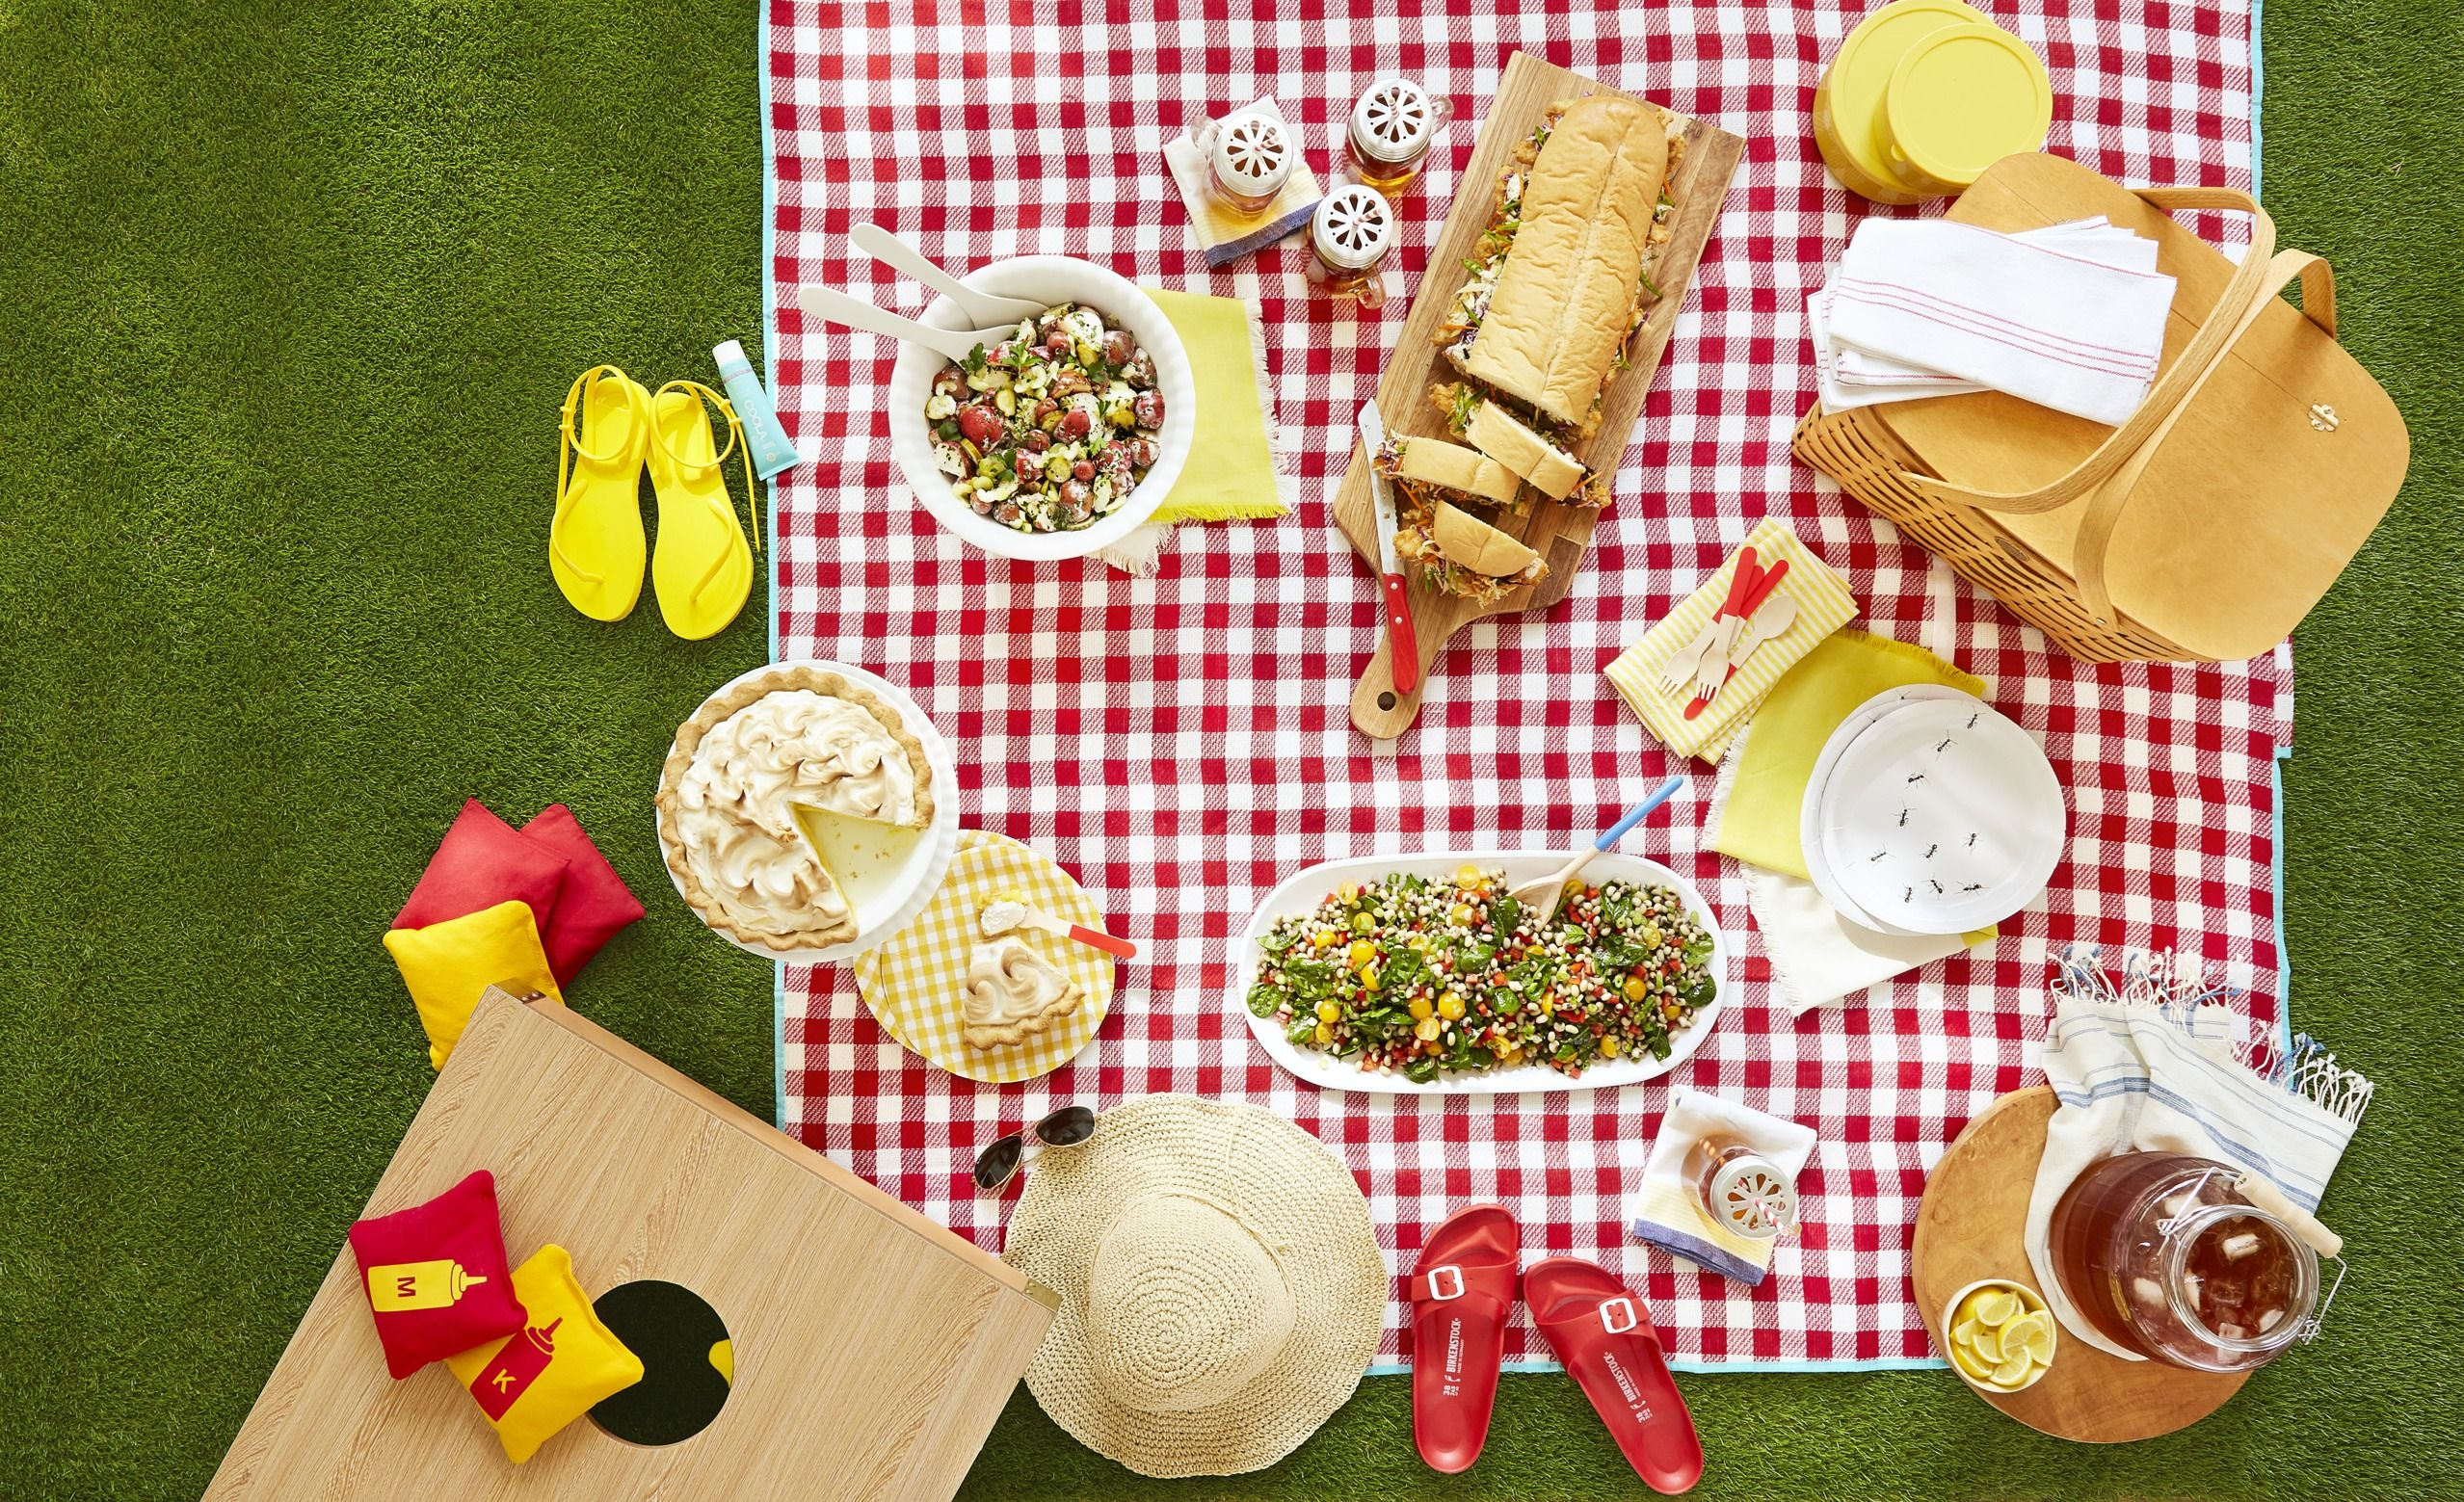 50 Best Backyard Bbq Party Ideas Summer Party Tips